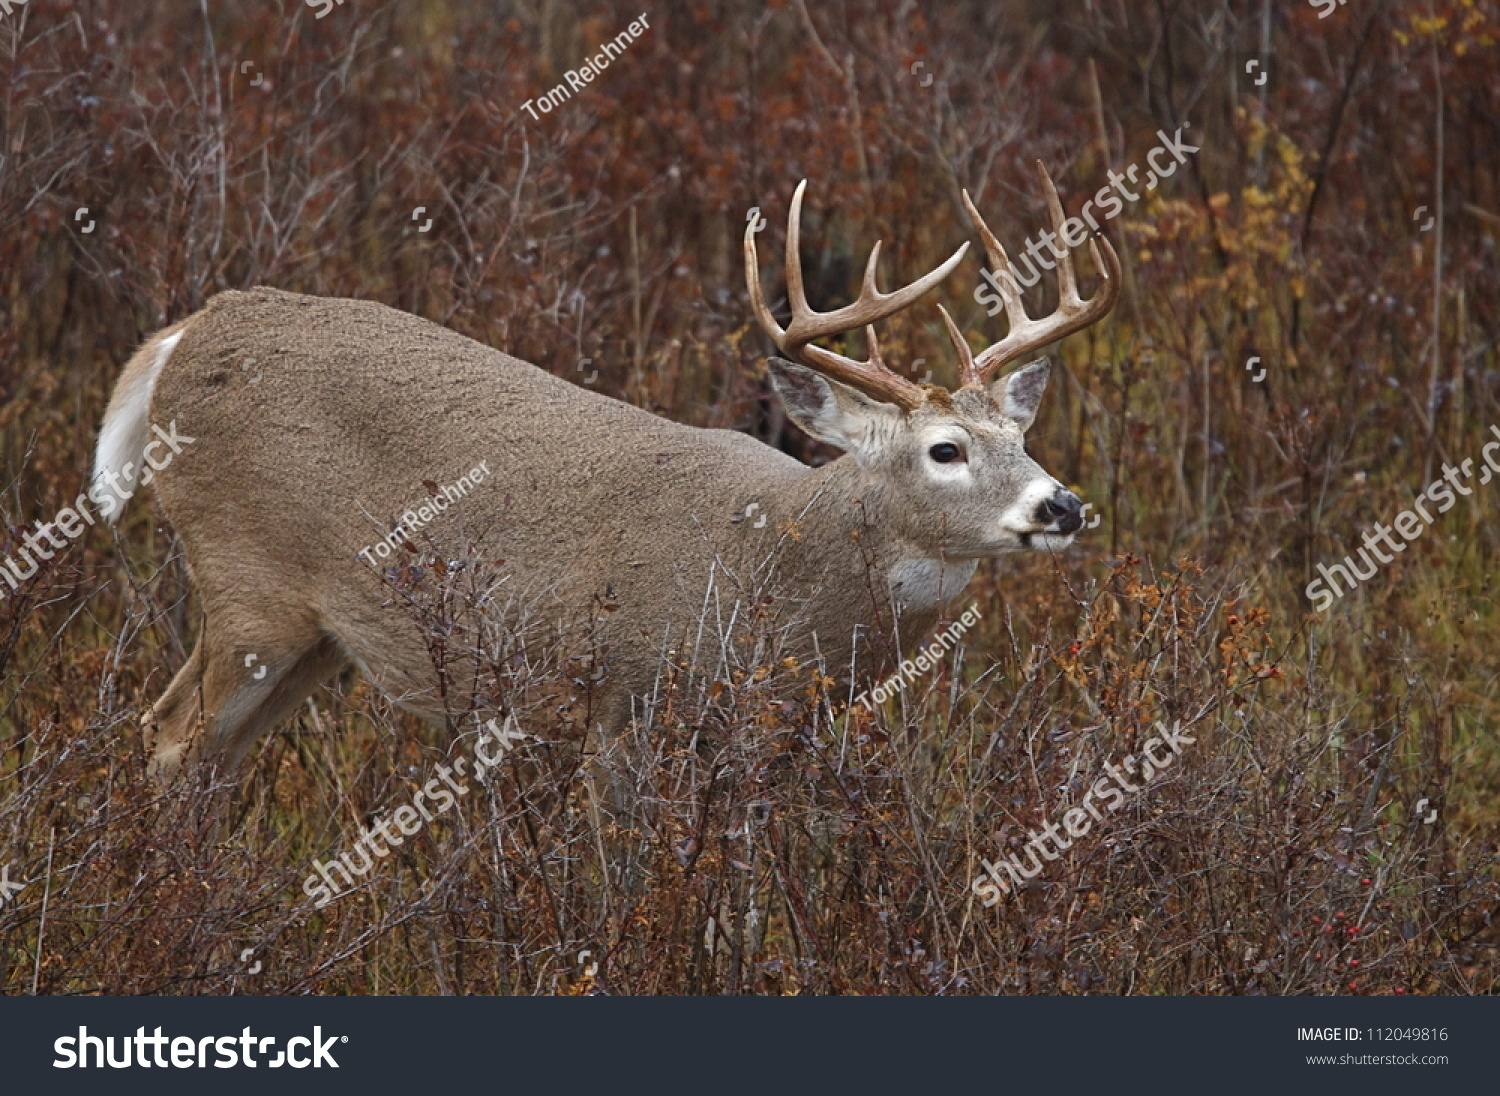 white deer hindu personals The point reyes fallow deer have been spotted 30 miles outside the park boundaries, and to further complicate matters, the vedanta society, a monotheistic hindu sect that dates to the turn of the .